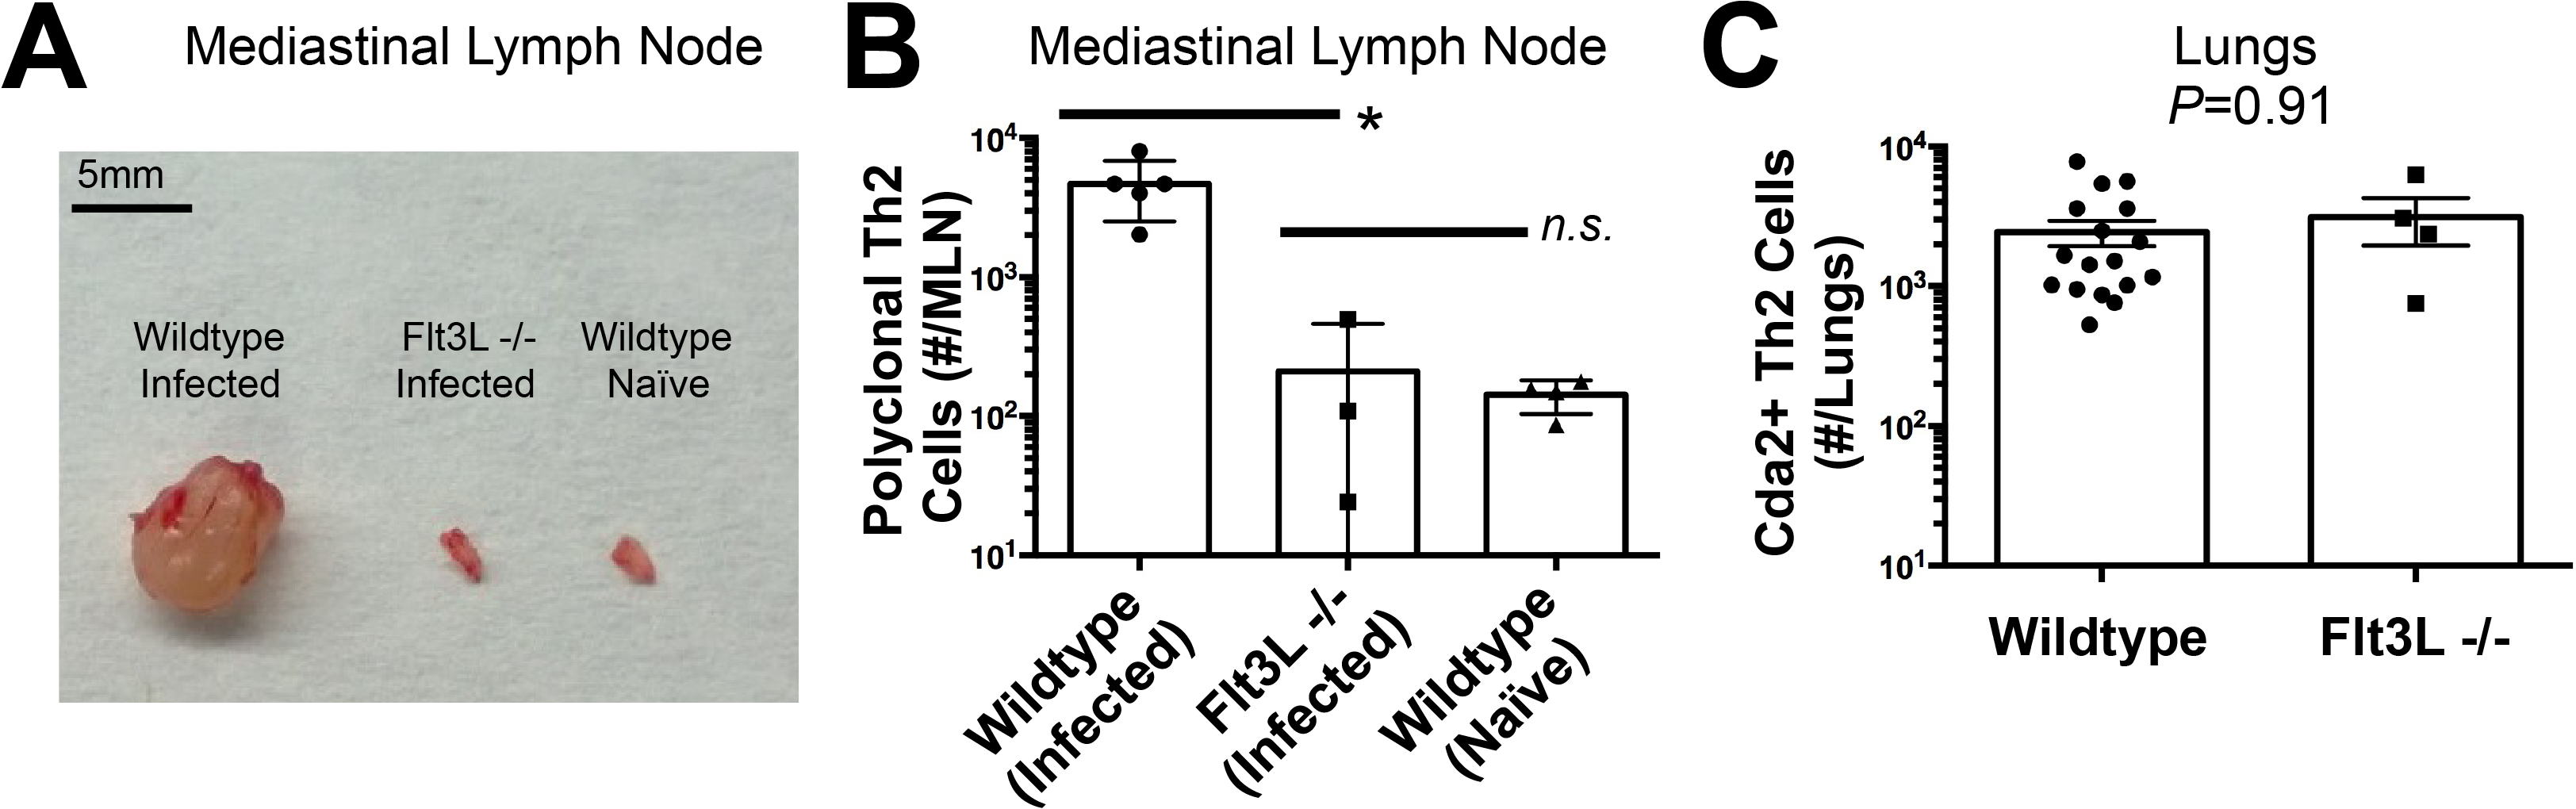 Lymphoid Priming is Dispensible for Pulmonary Th2 Cell Induction during Cryptococcal Infection.